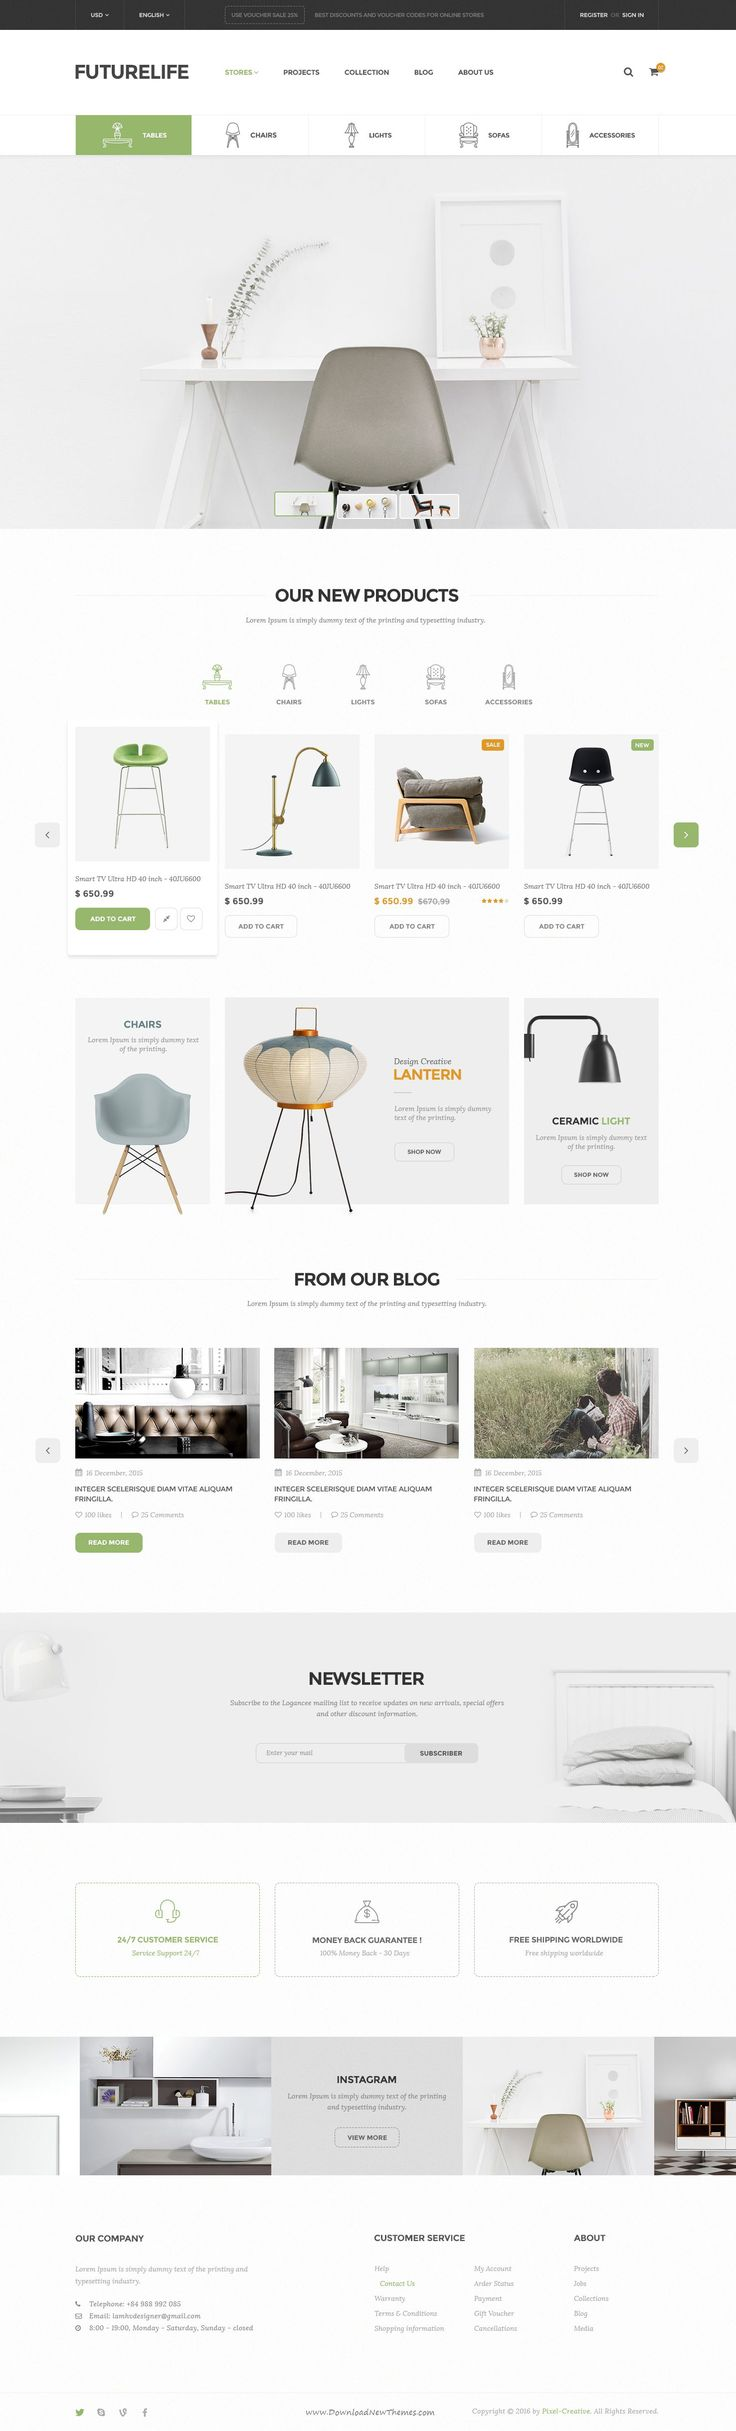 Futurelife – Ecommerce PSD Template is a uniquely eCommerce #website template designed in Photoshop with a modern look. Perfect for #furniture or interior shop. Download Now➝ http://themeforest.net/item/futurelife-ecommerce-psd-template/15747411?ref=Datasata